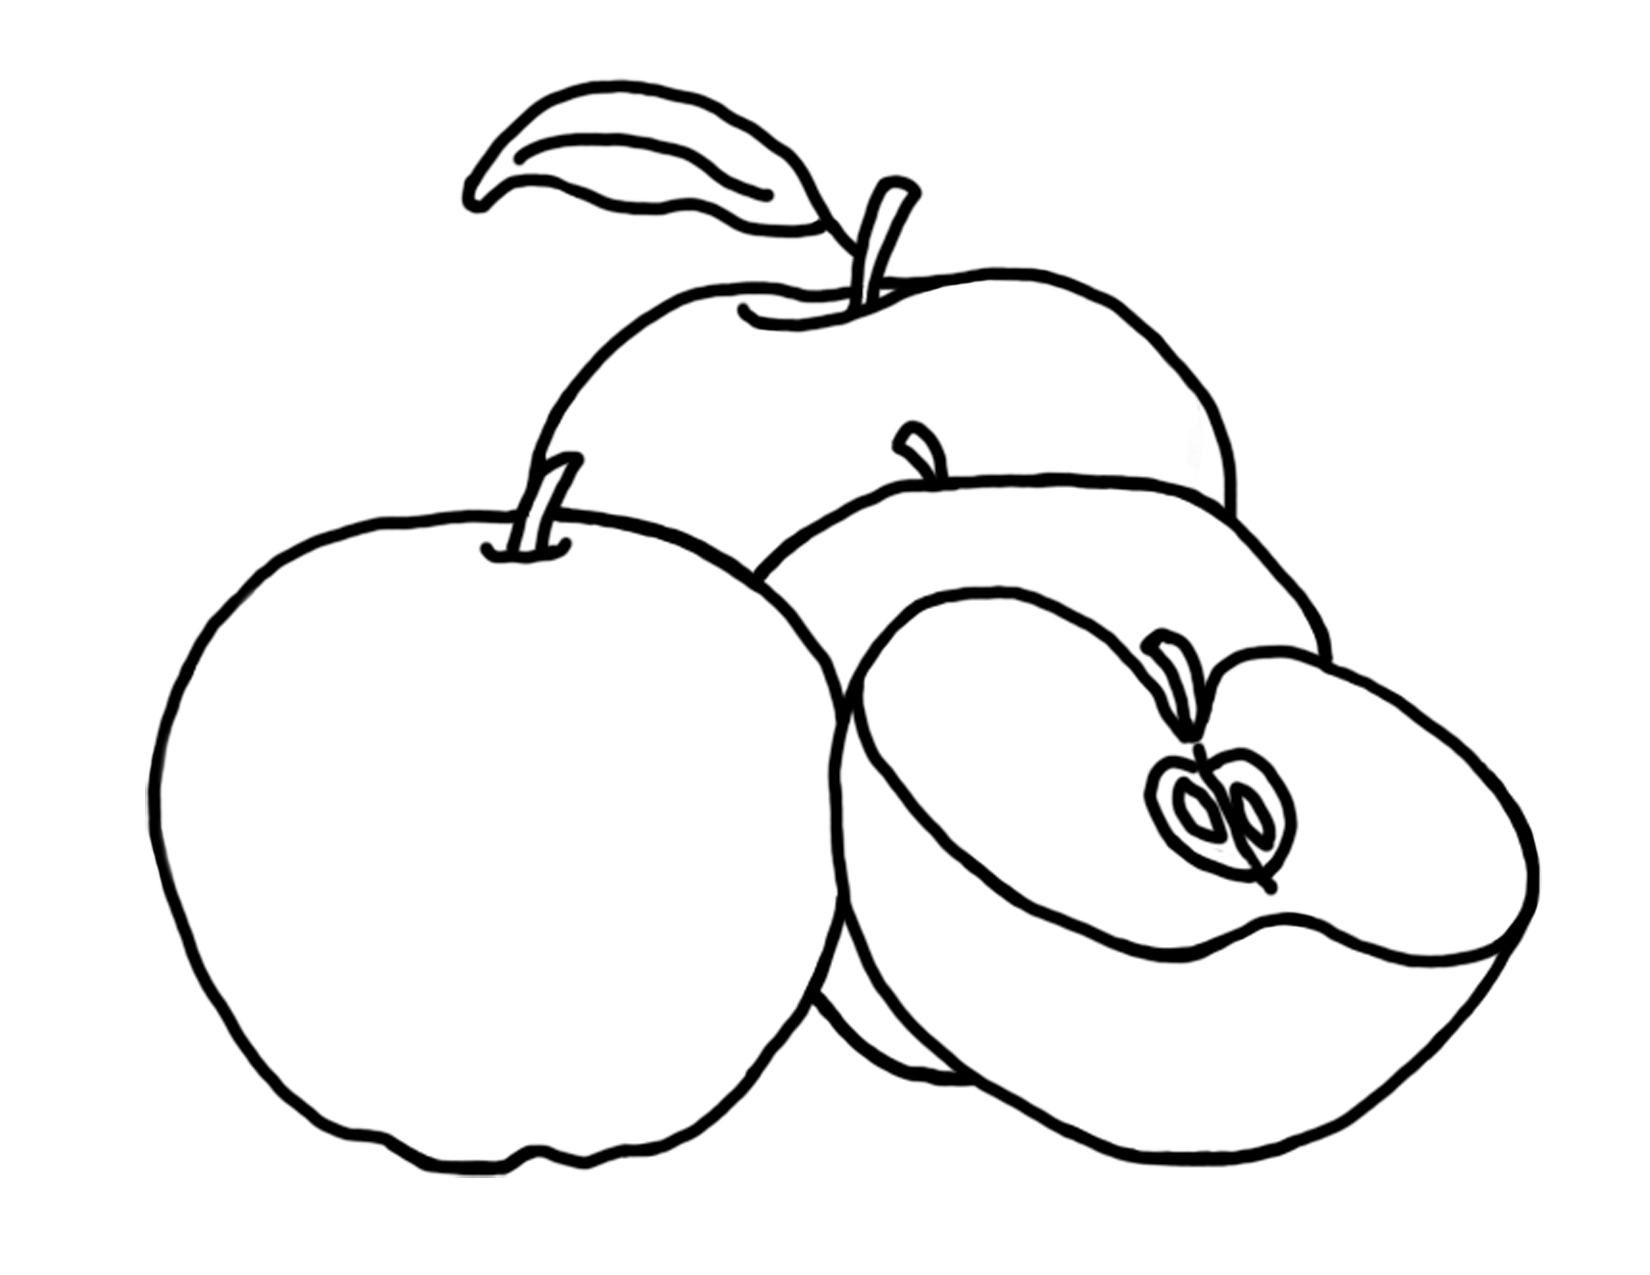 printable apple pictures printable simple apple outline 9 coloring page apple pictures printable